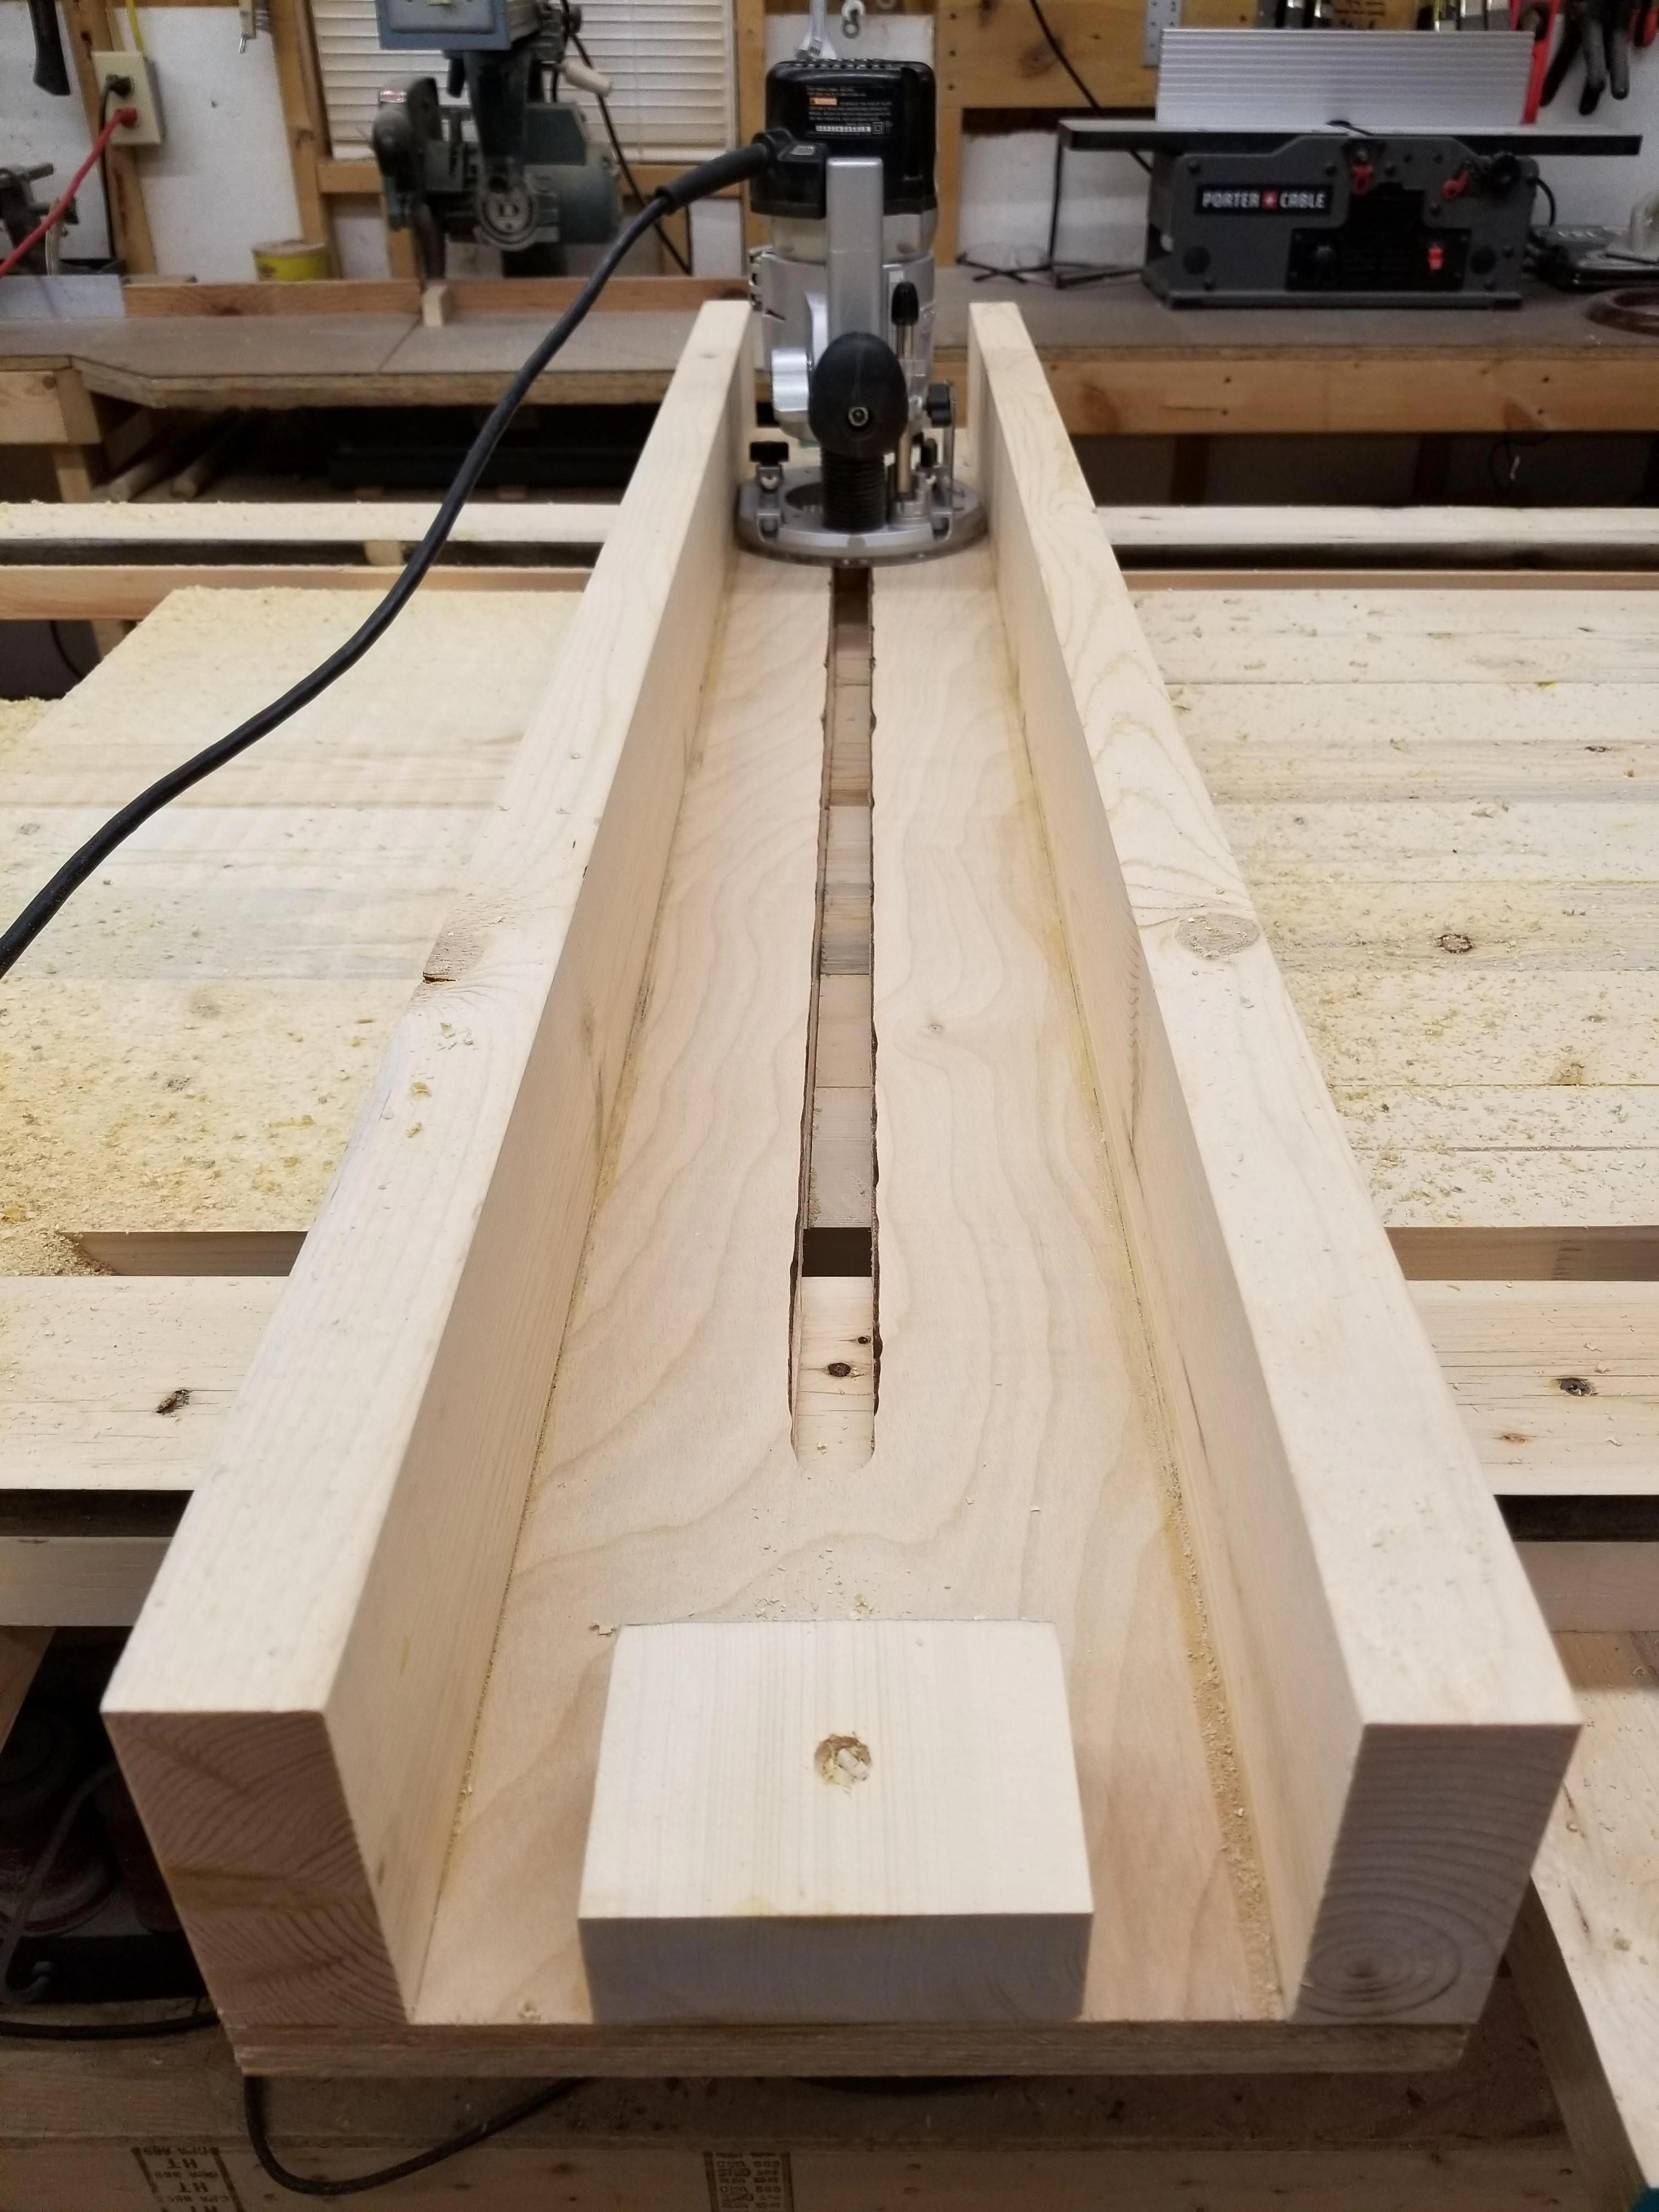 Woodworking Tips And Tricks Woodworkingtools Woodworking Tools Storage Woodworking Tools Router Diy Woodworking